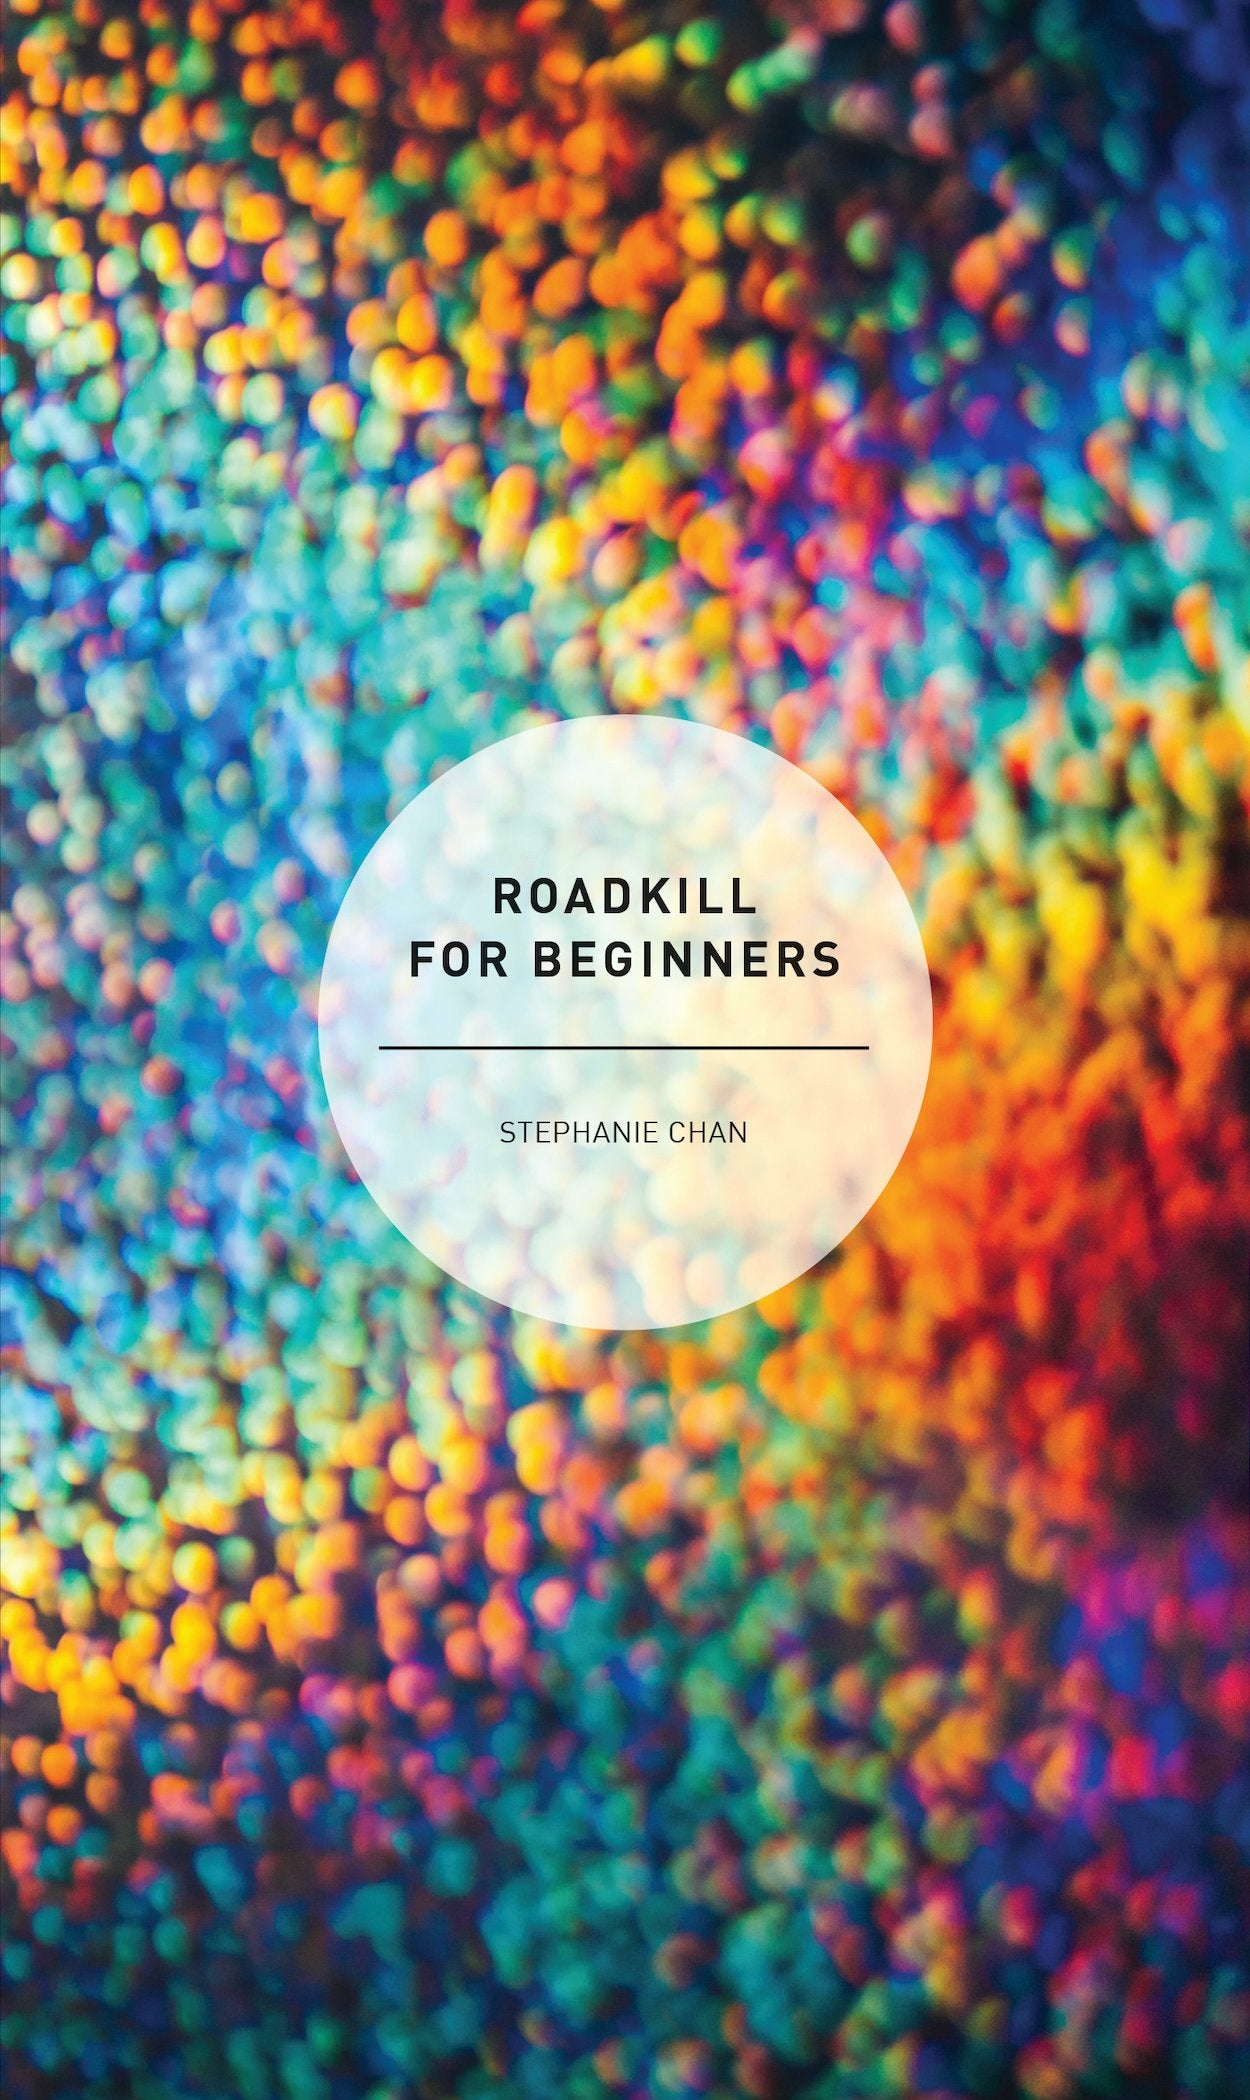 Roadkill for Beginners